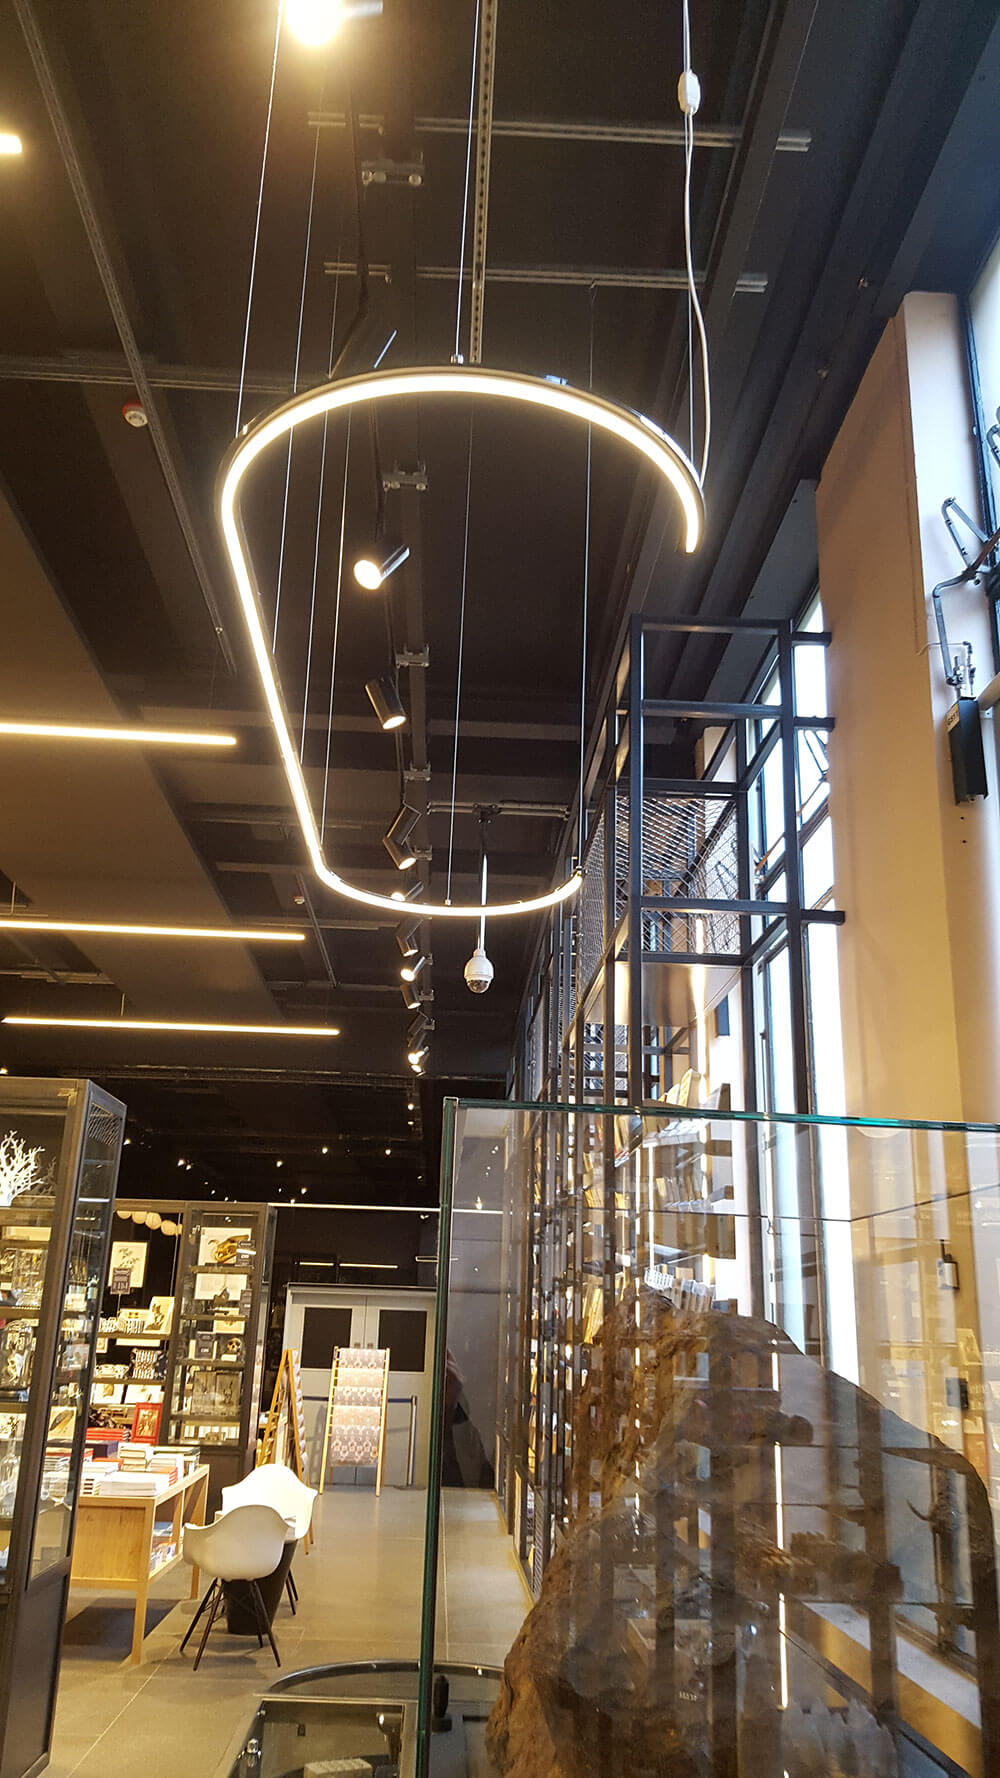 retail-shop-national-history-museum-london-1-mjlighting